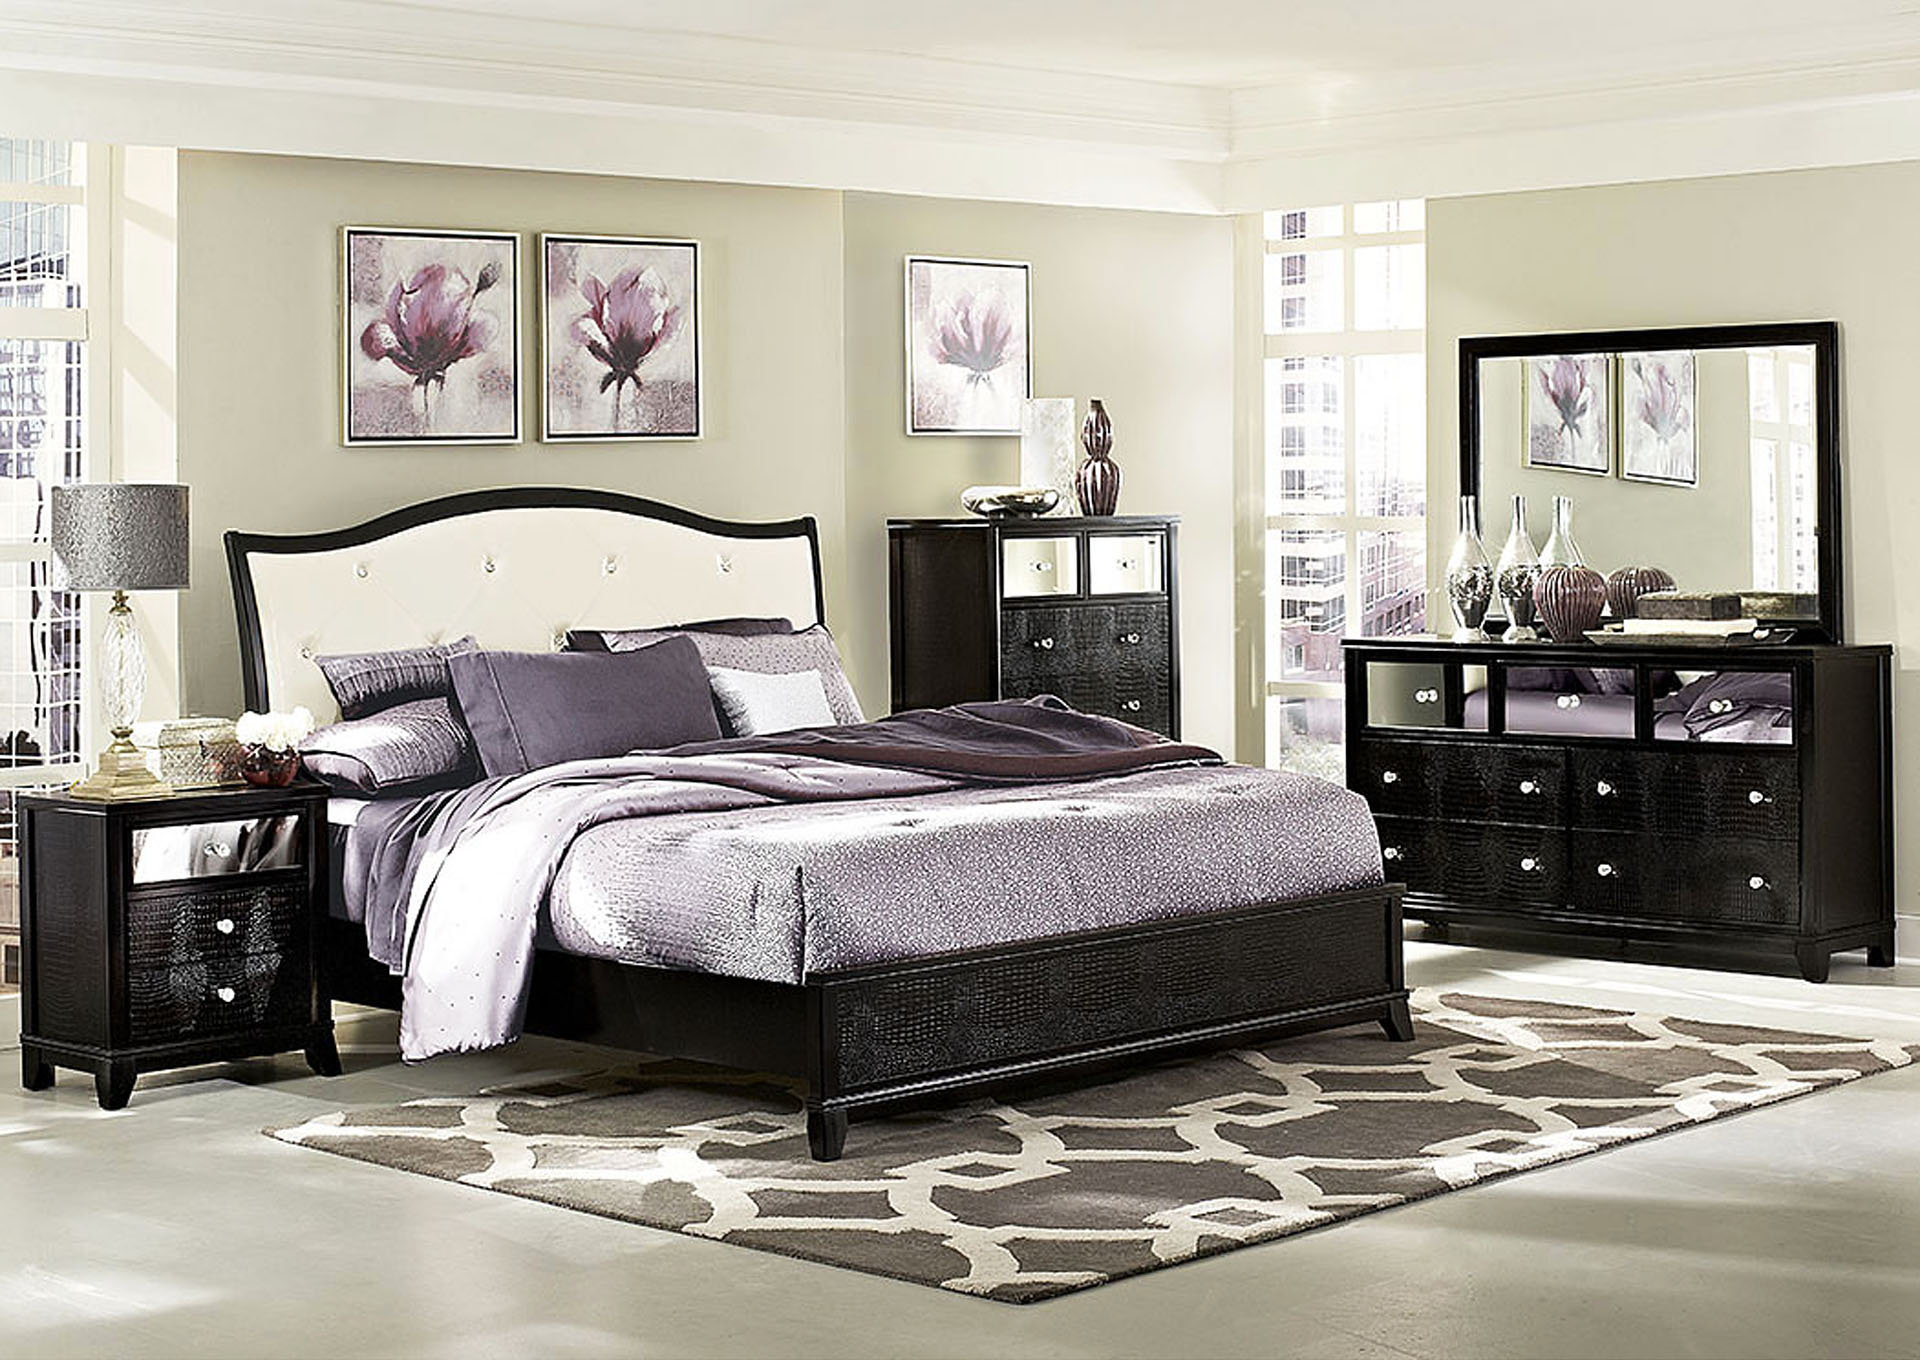 Charmant Jacqueline Upholstered Queen Bed W/Dresser, Mirror, Drawer Chest And  Nightstand,Homelegance